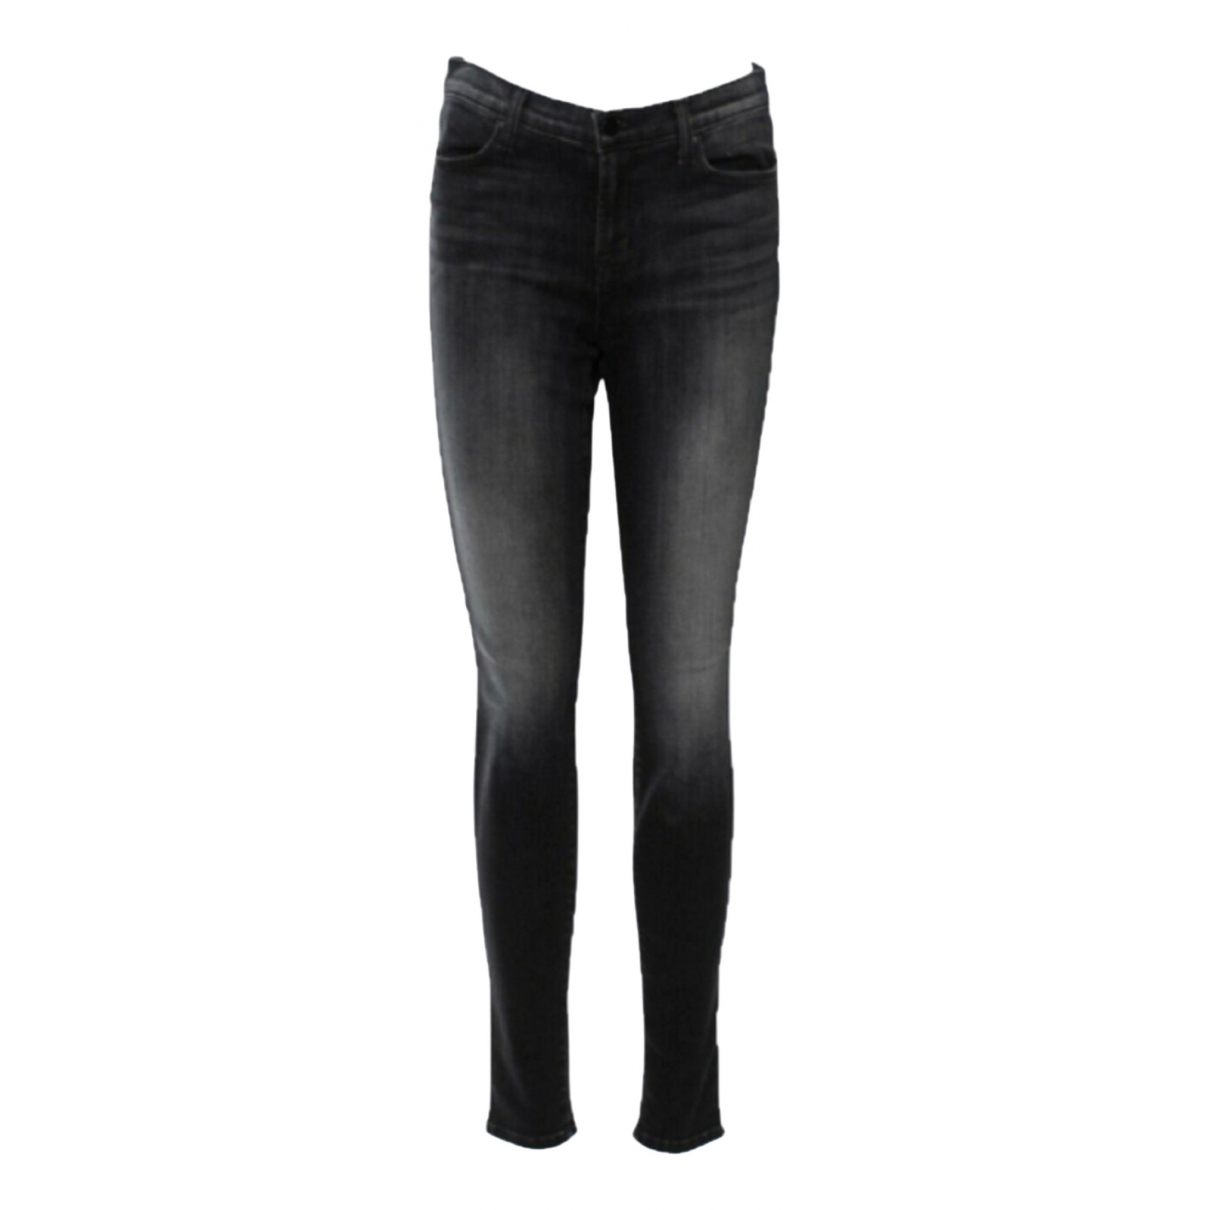 J Brand \N Black Cotton - elasthane Jeans for Women 29 US